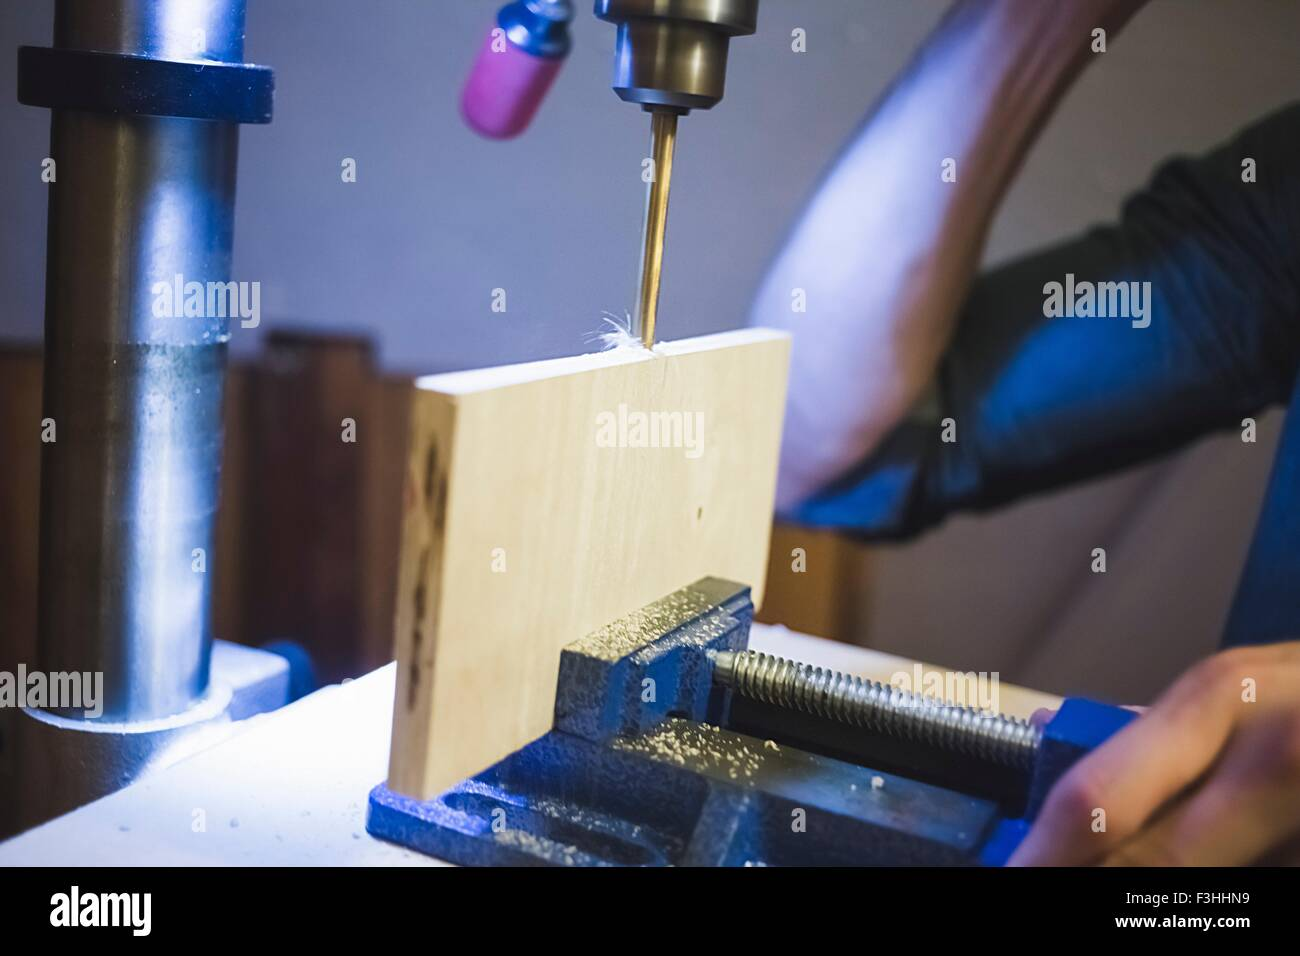 Cropped view of young mans hands operating drill on wood in clamp - Stock Image